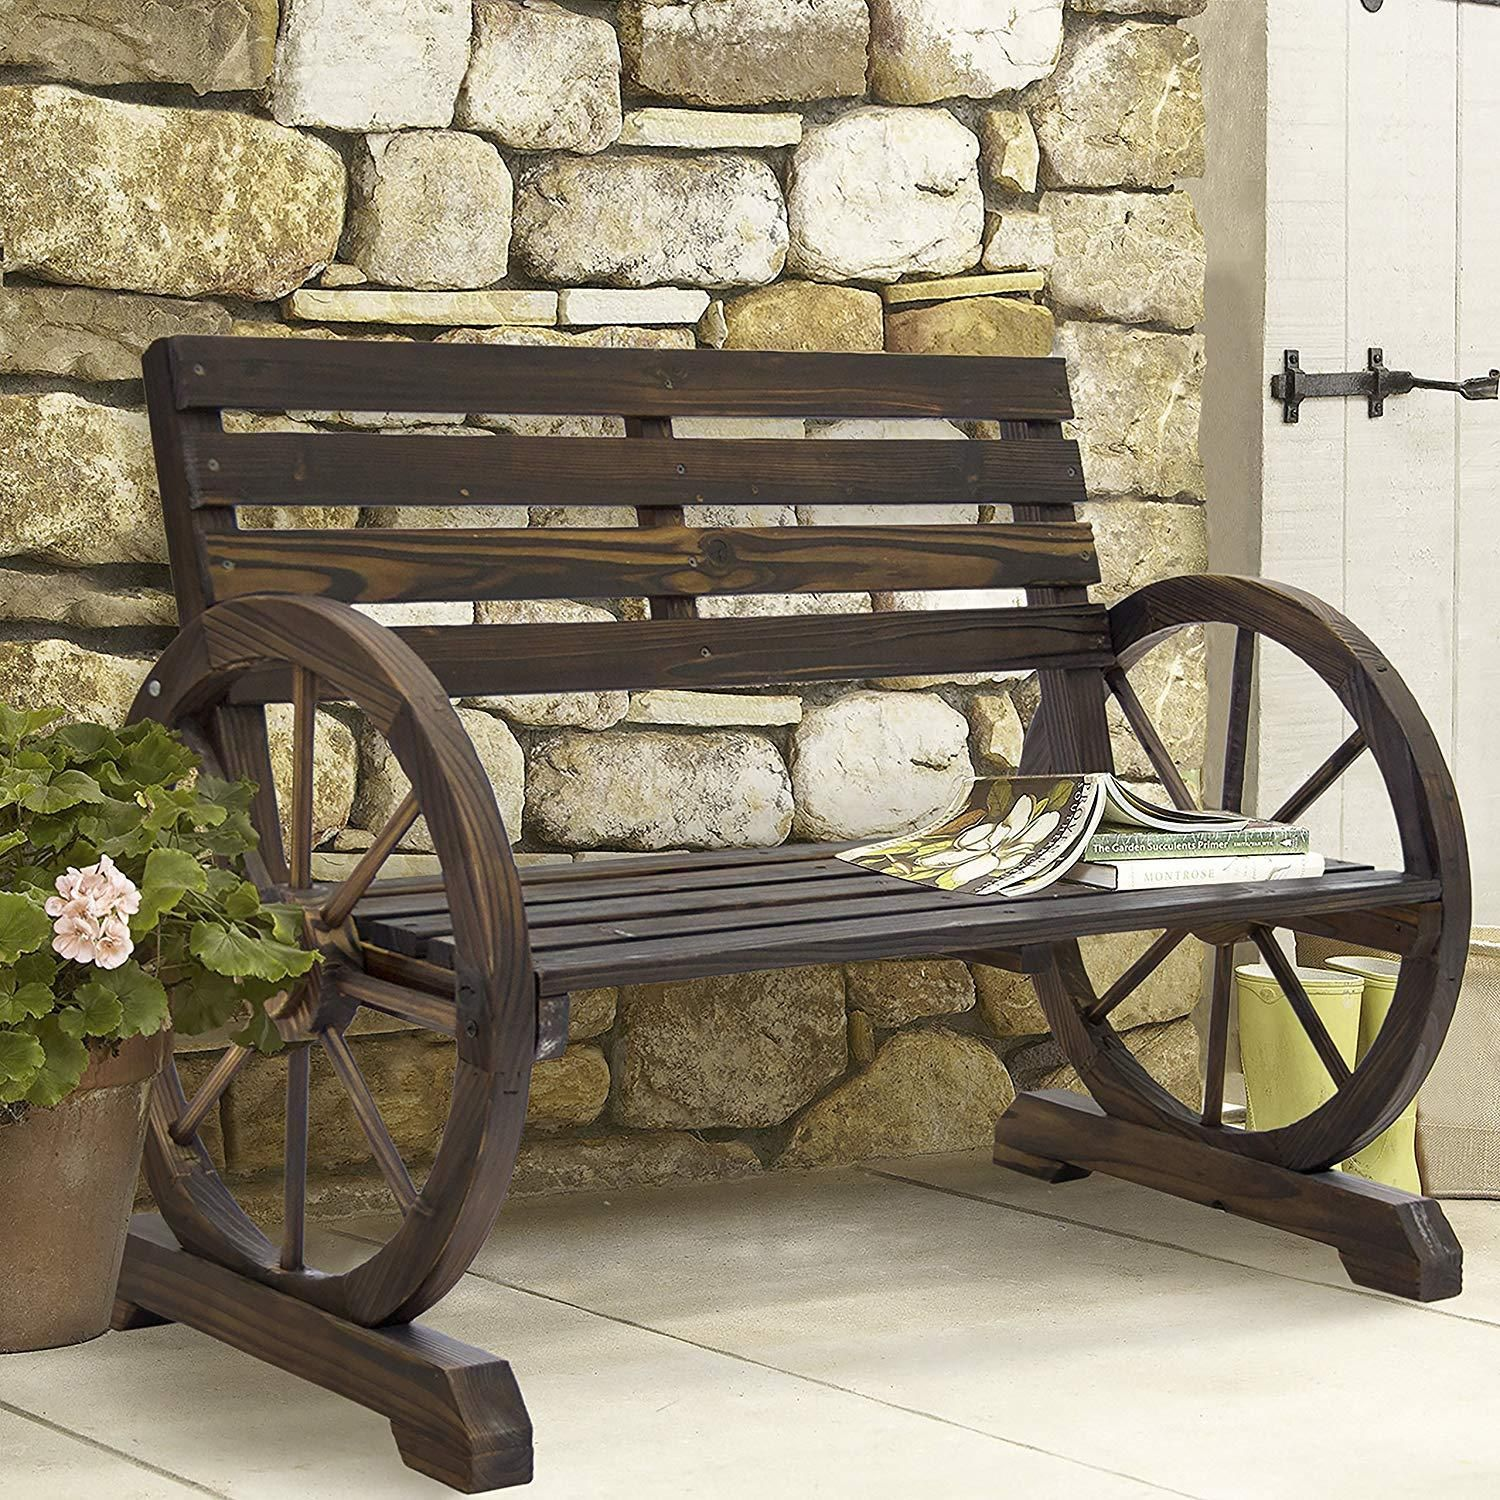 Pleasing Winston Bay British Colonial Rustic Wood War Bench Outdoor Caraccident5 Cool Chair Designs And Ideas Caraccident5Info